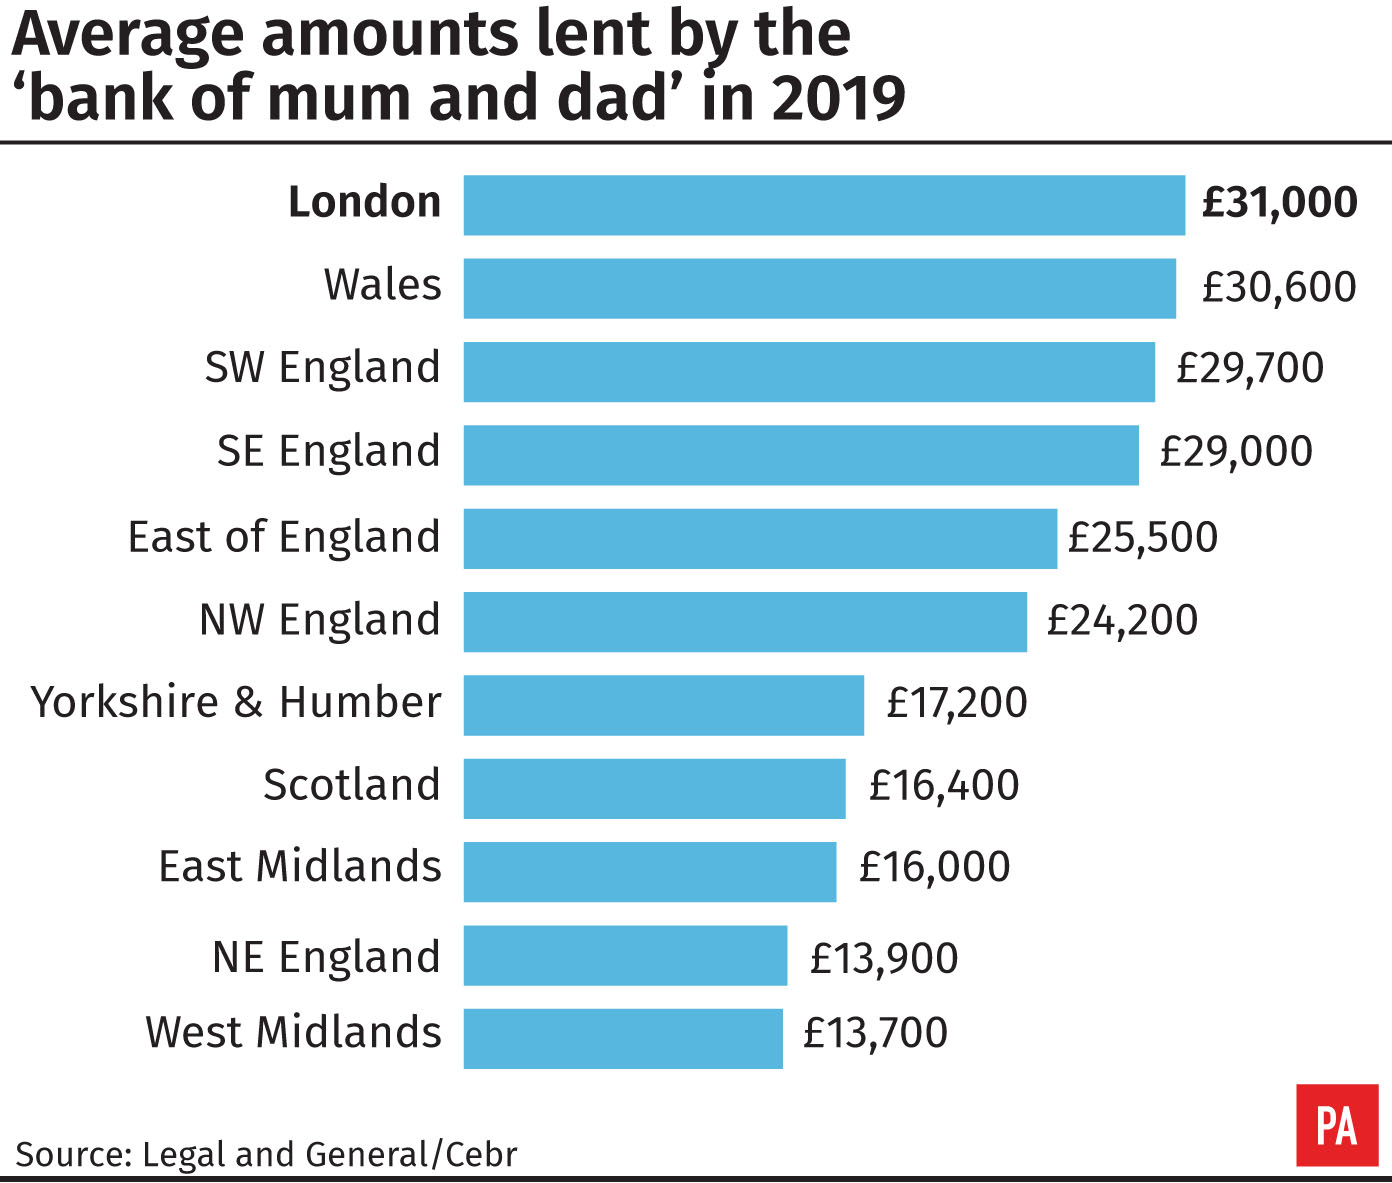 Average amounts lent by the 'bank of mum and dad' in 2019